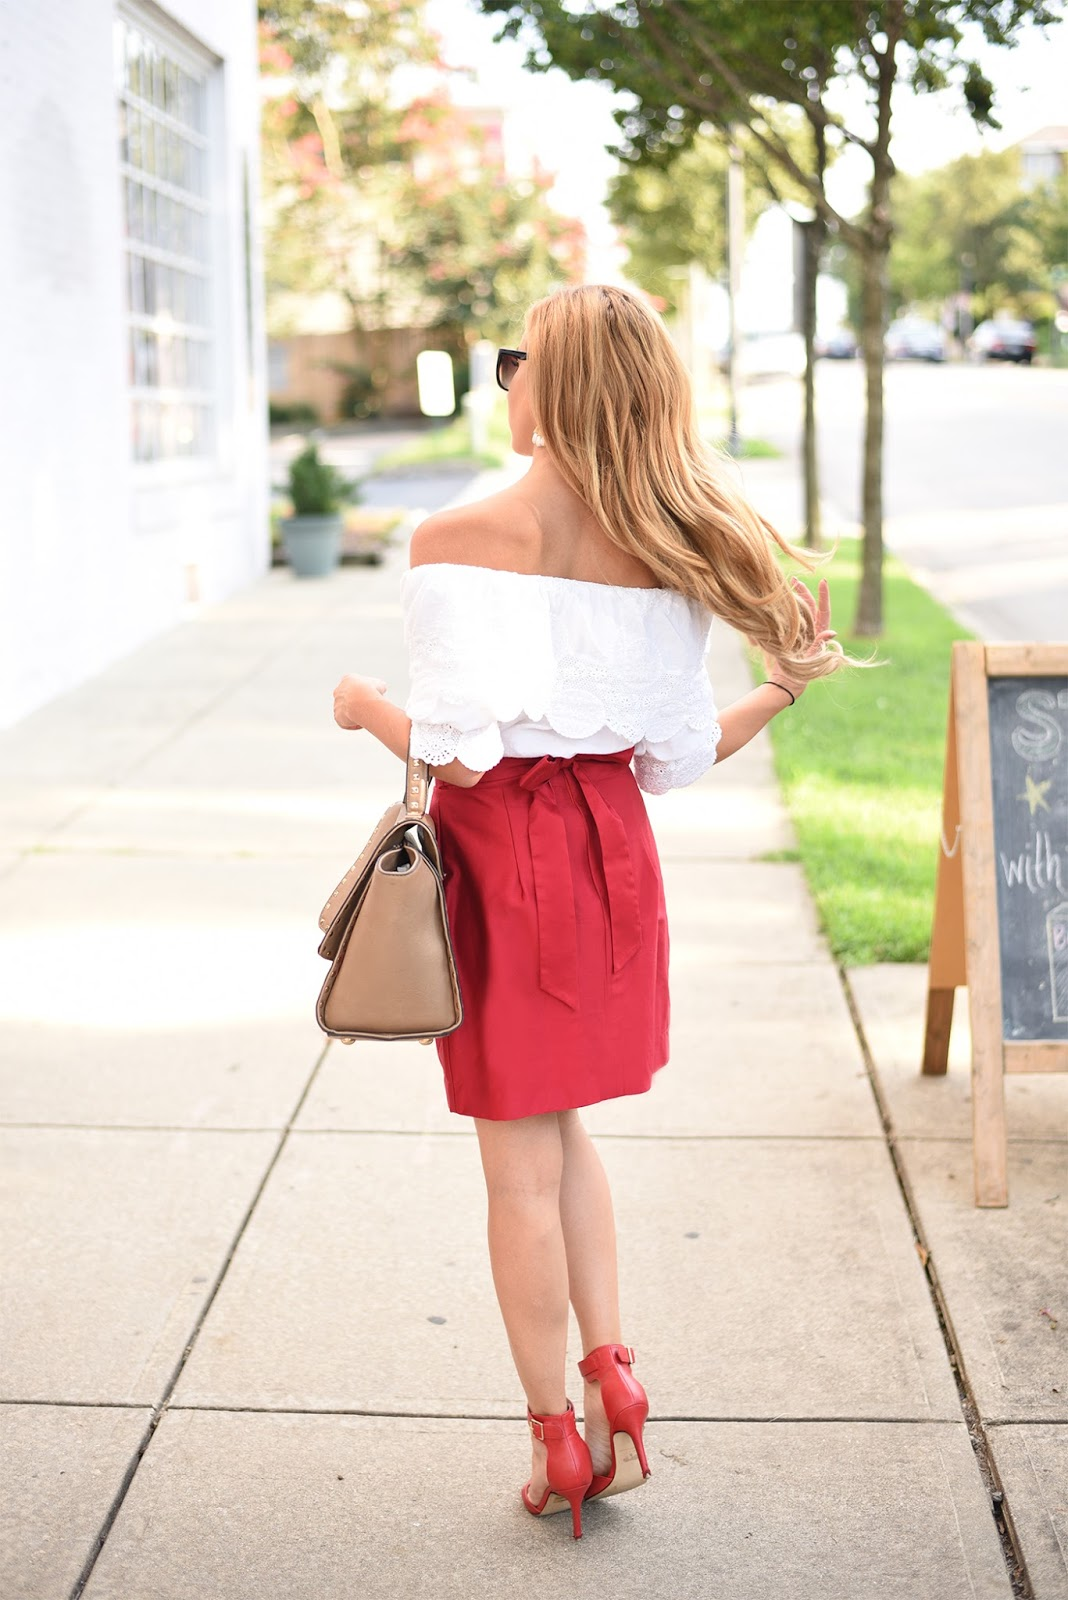 Fashion-blogger-street-style-off-the-shoulder-top-back-shot